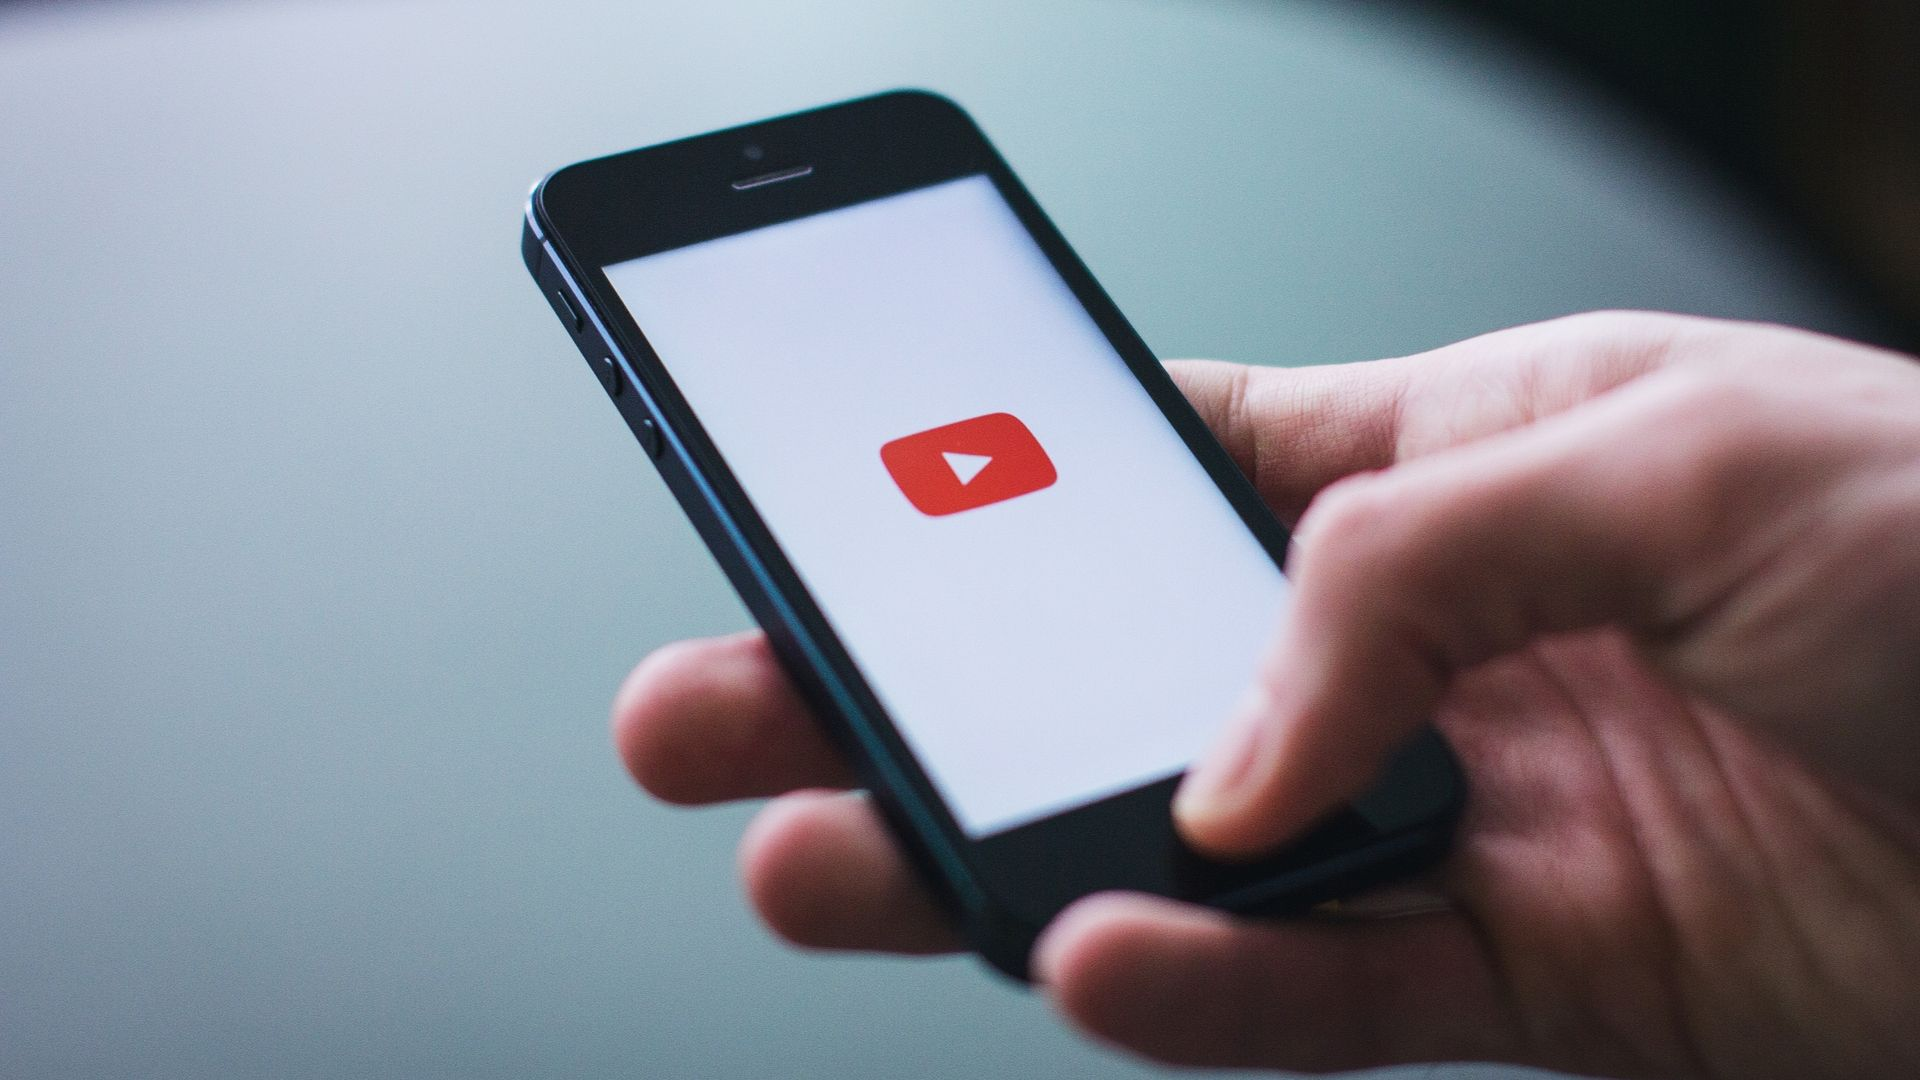 5 Simple Steps to Make Your YouTube Channel Look Great